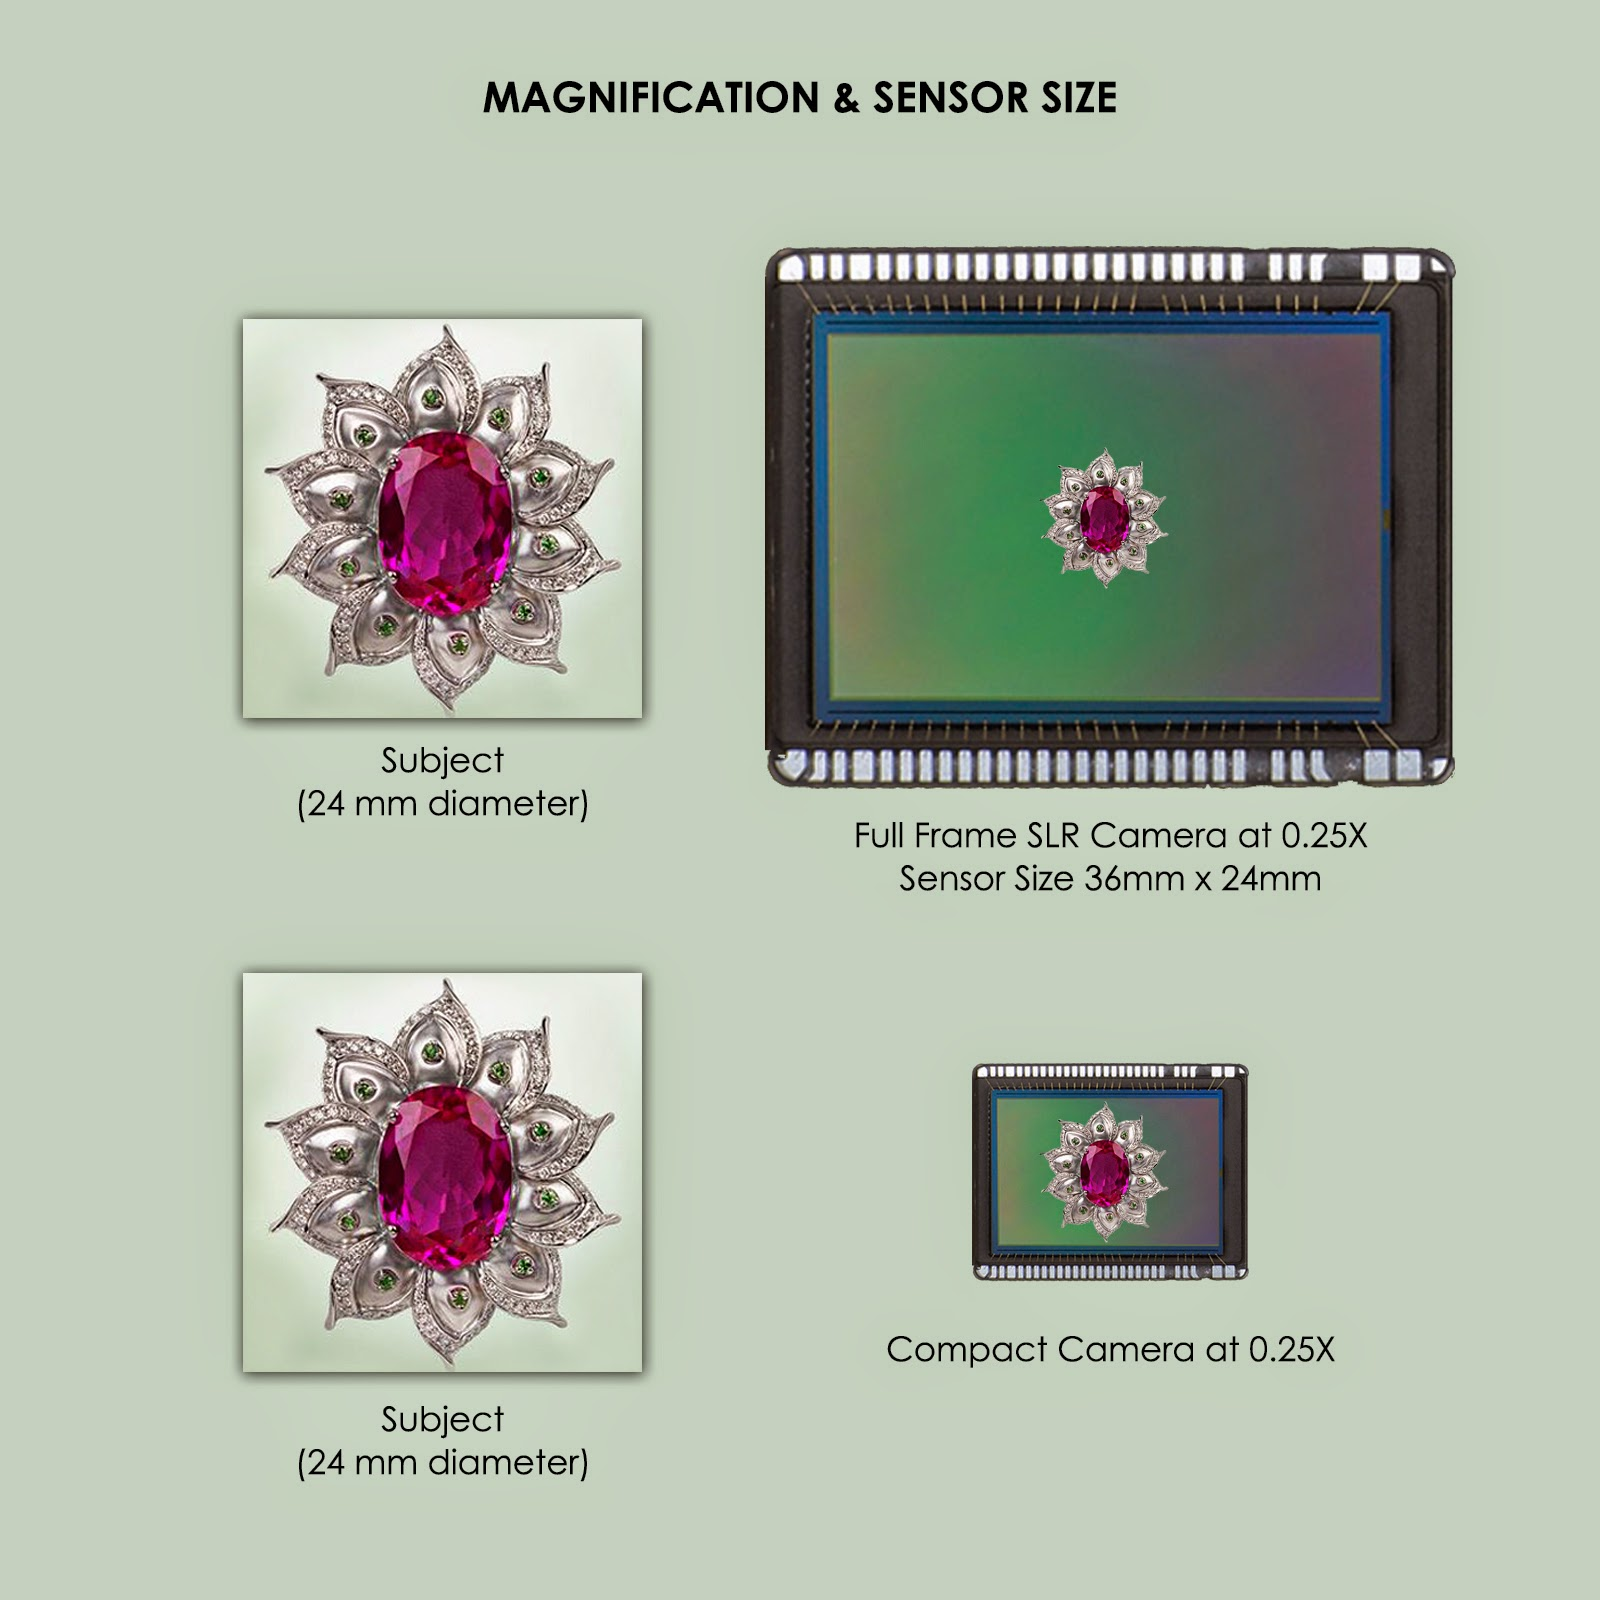 macro photography magnification and sensor size